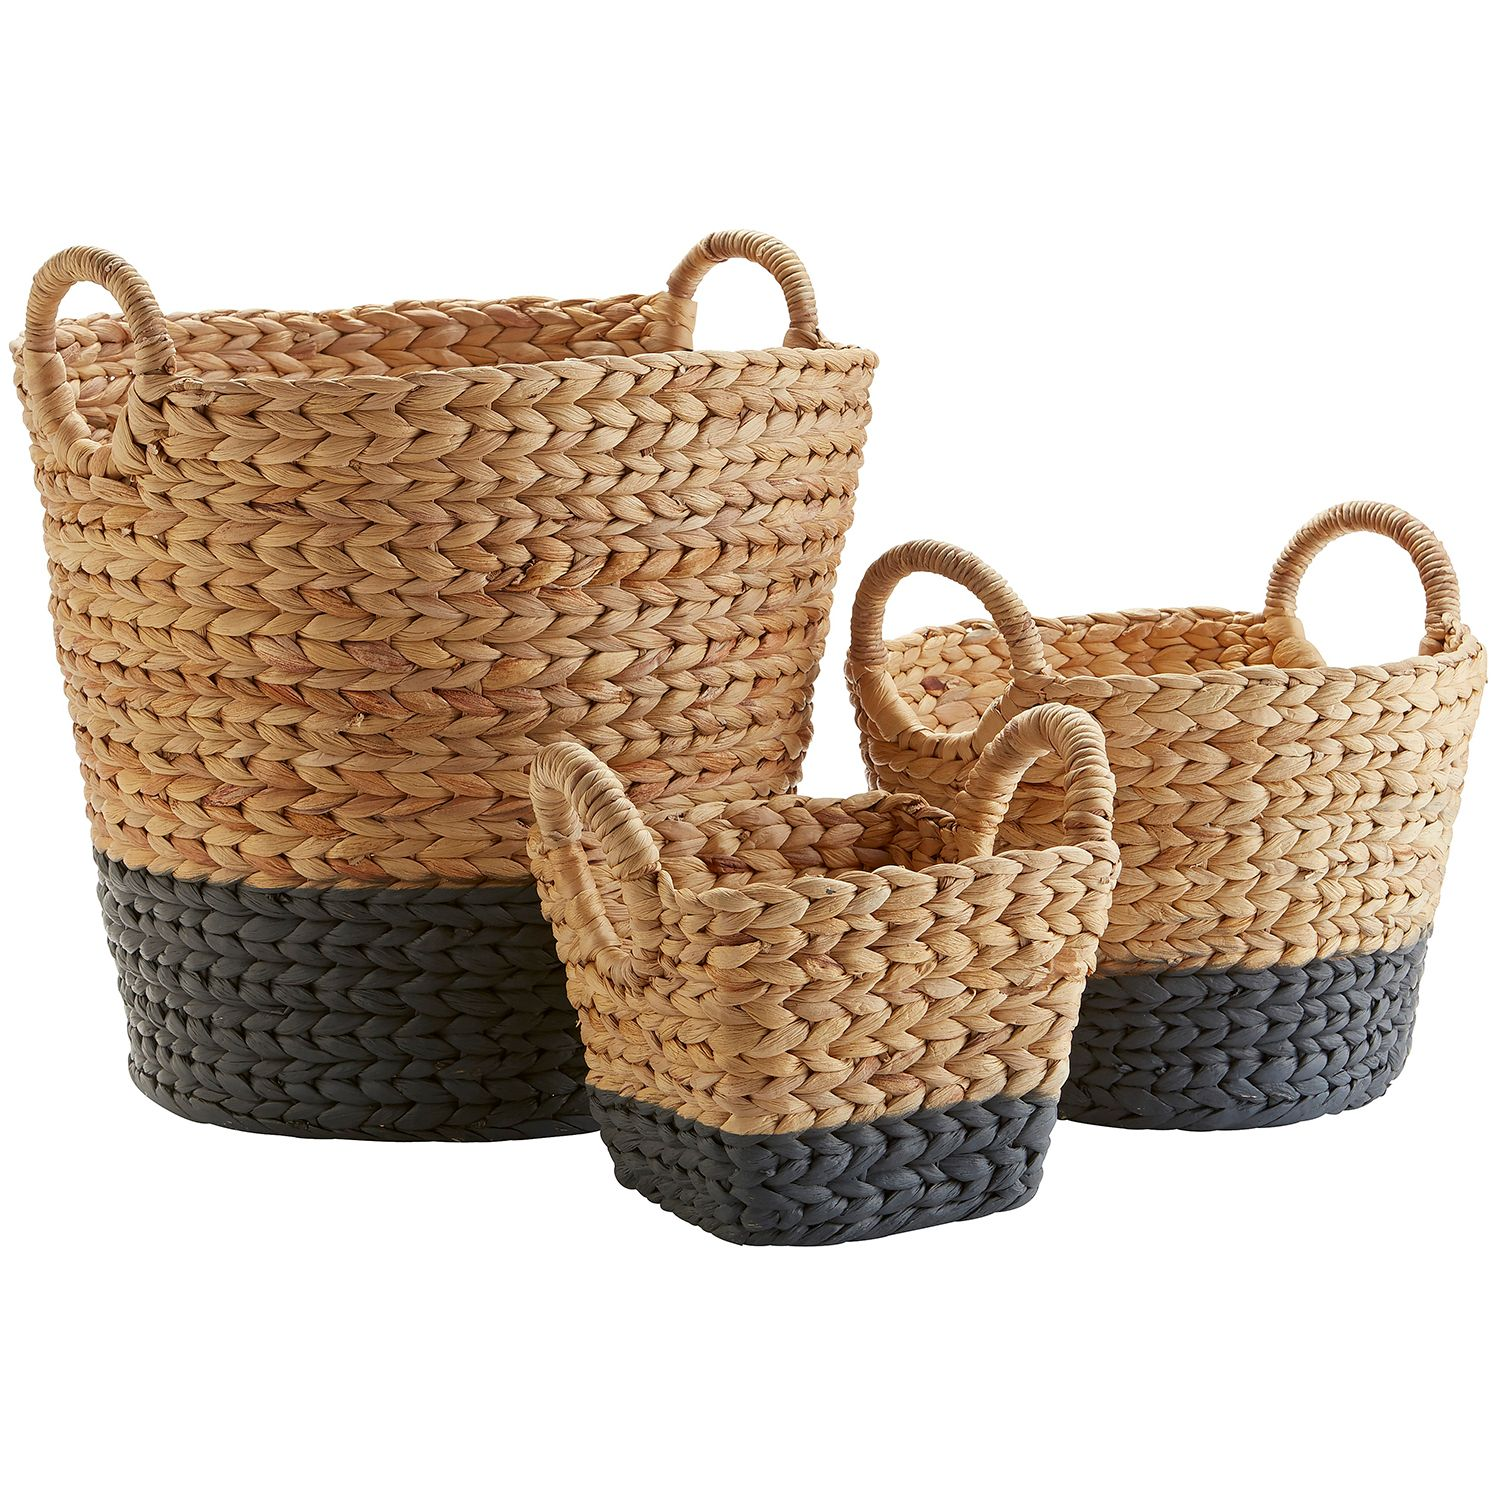 Dippy Gray & Natural Wicker Baskets | Pier 1